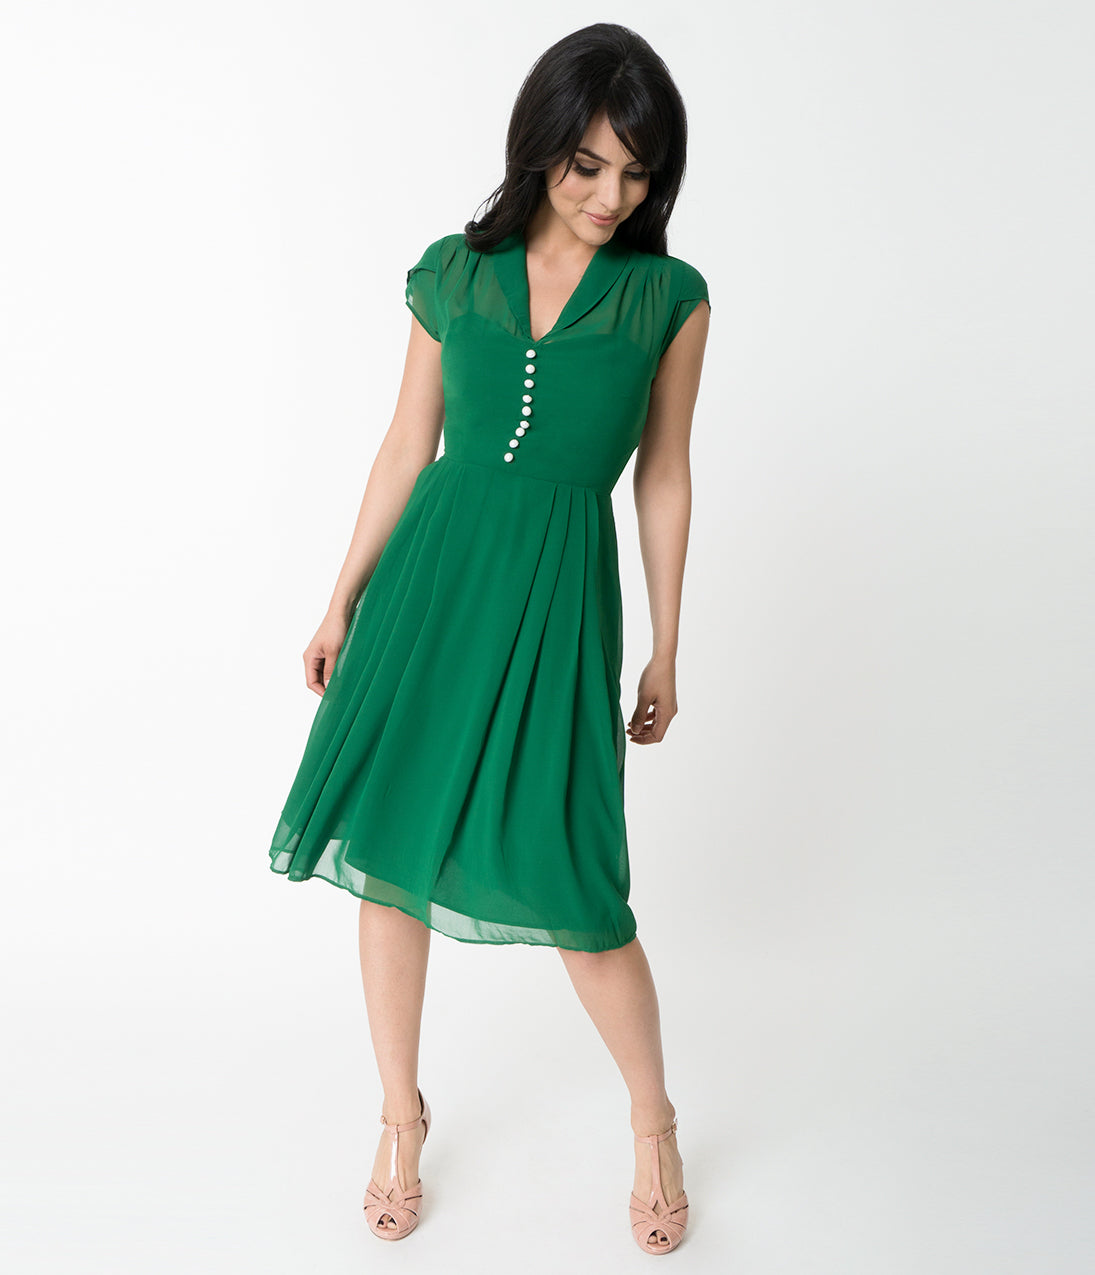 Pin Up Dresses | Pin Up Clothing Hell Bunny Green Chiffon Cap Sleeve Paige Flare Dress $92.00 AT vintagedancer.com